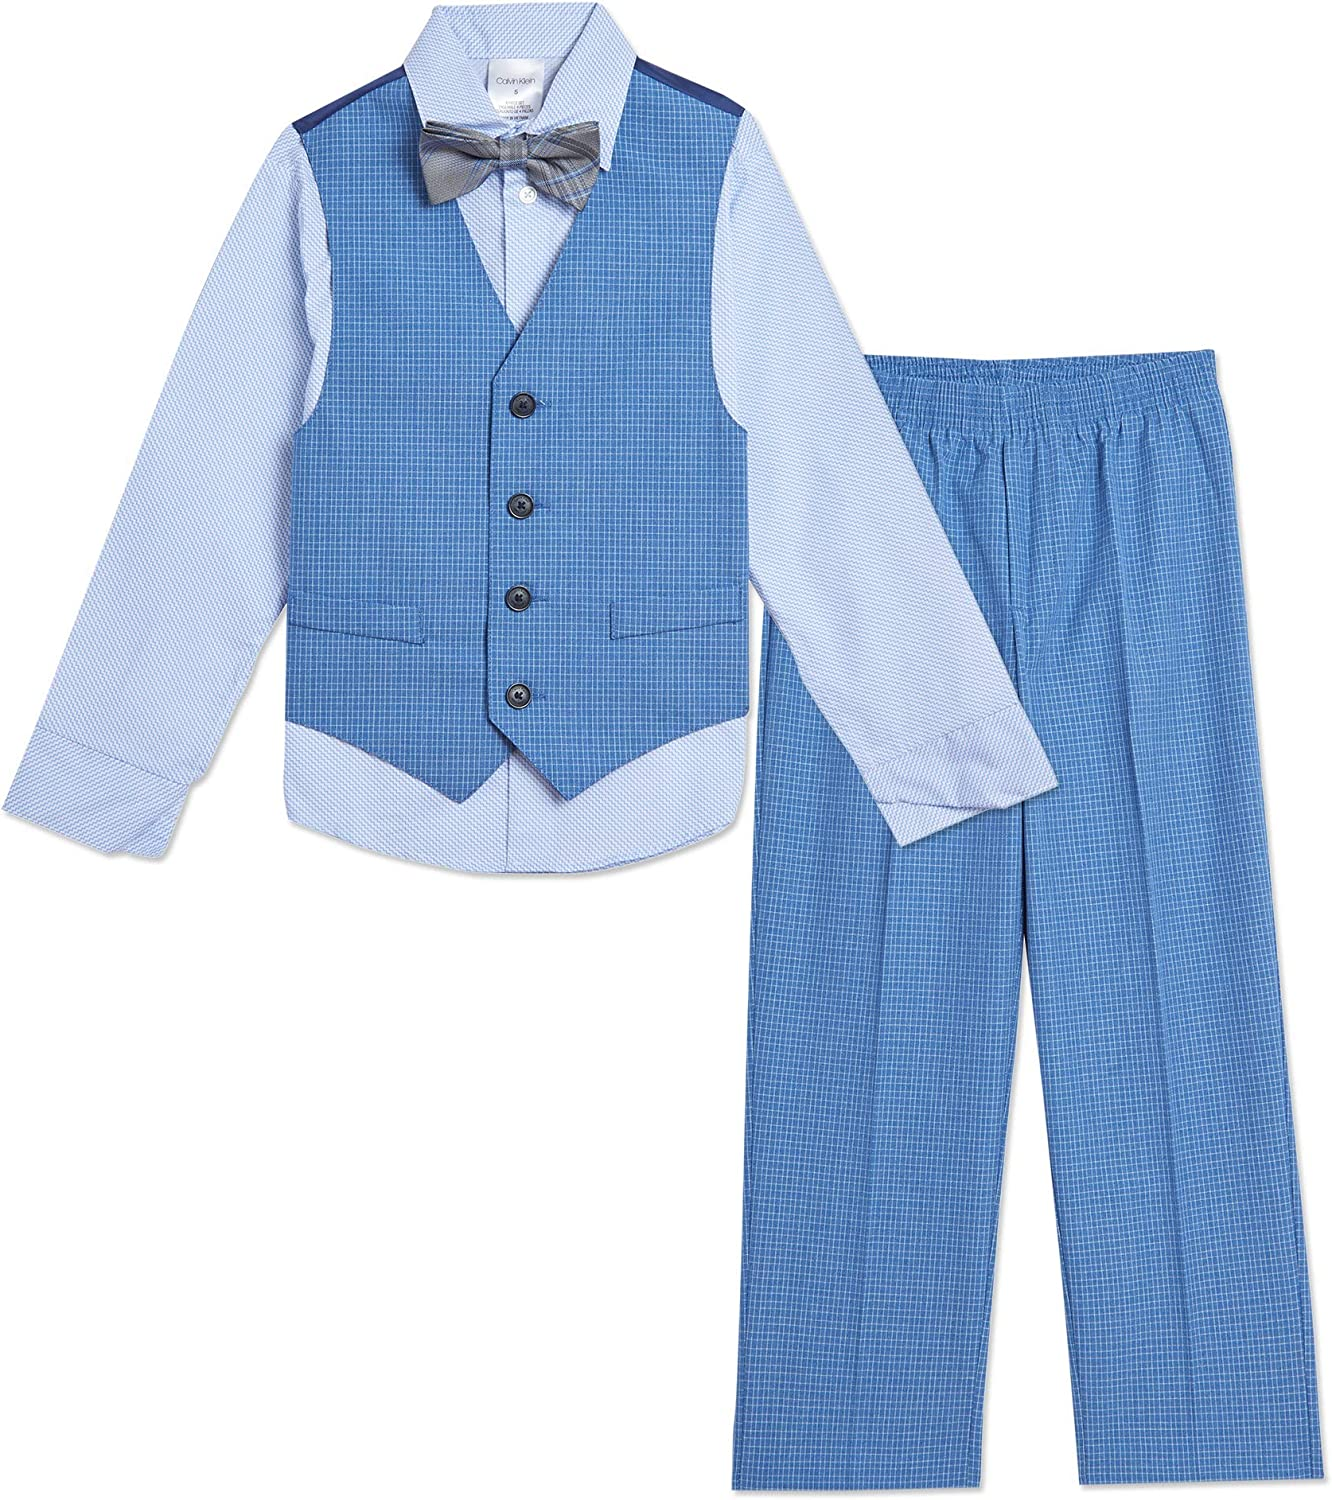 Calvin Klein Boys' 4-Piece Max 88% OFF Formal Includes Shirt with Set Regular store Dress